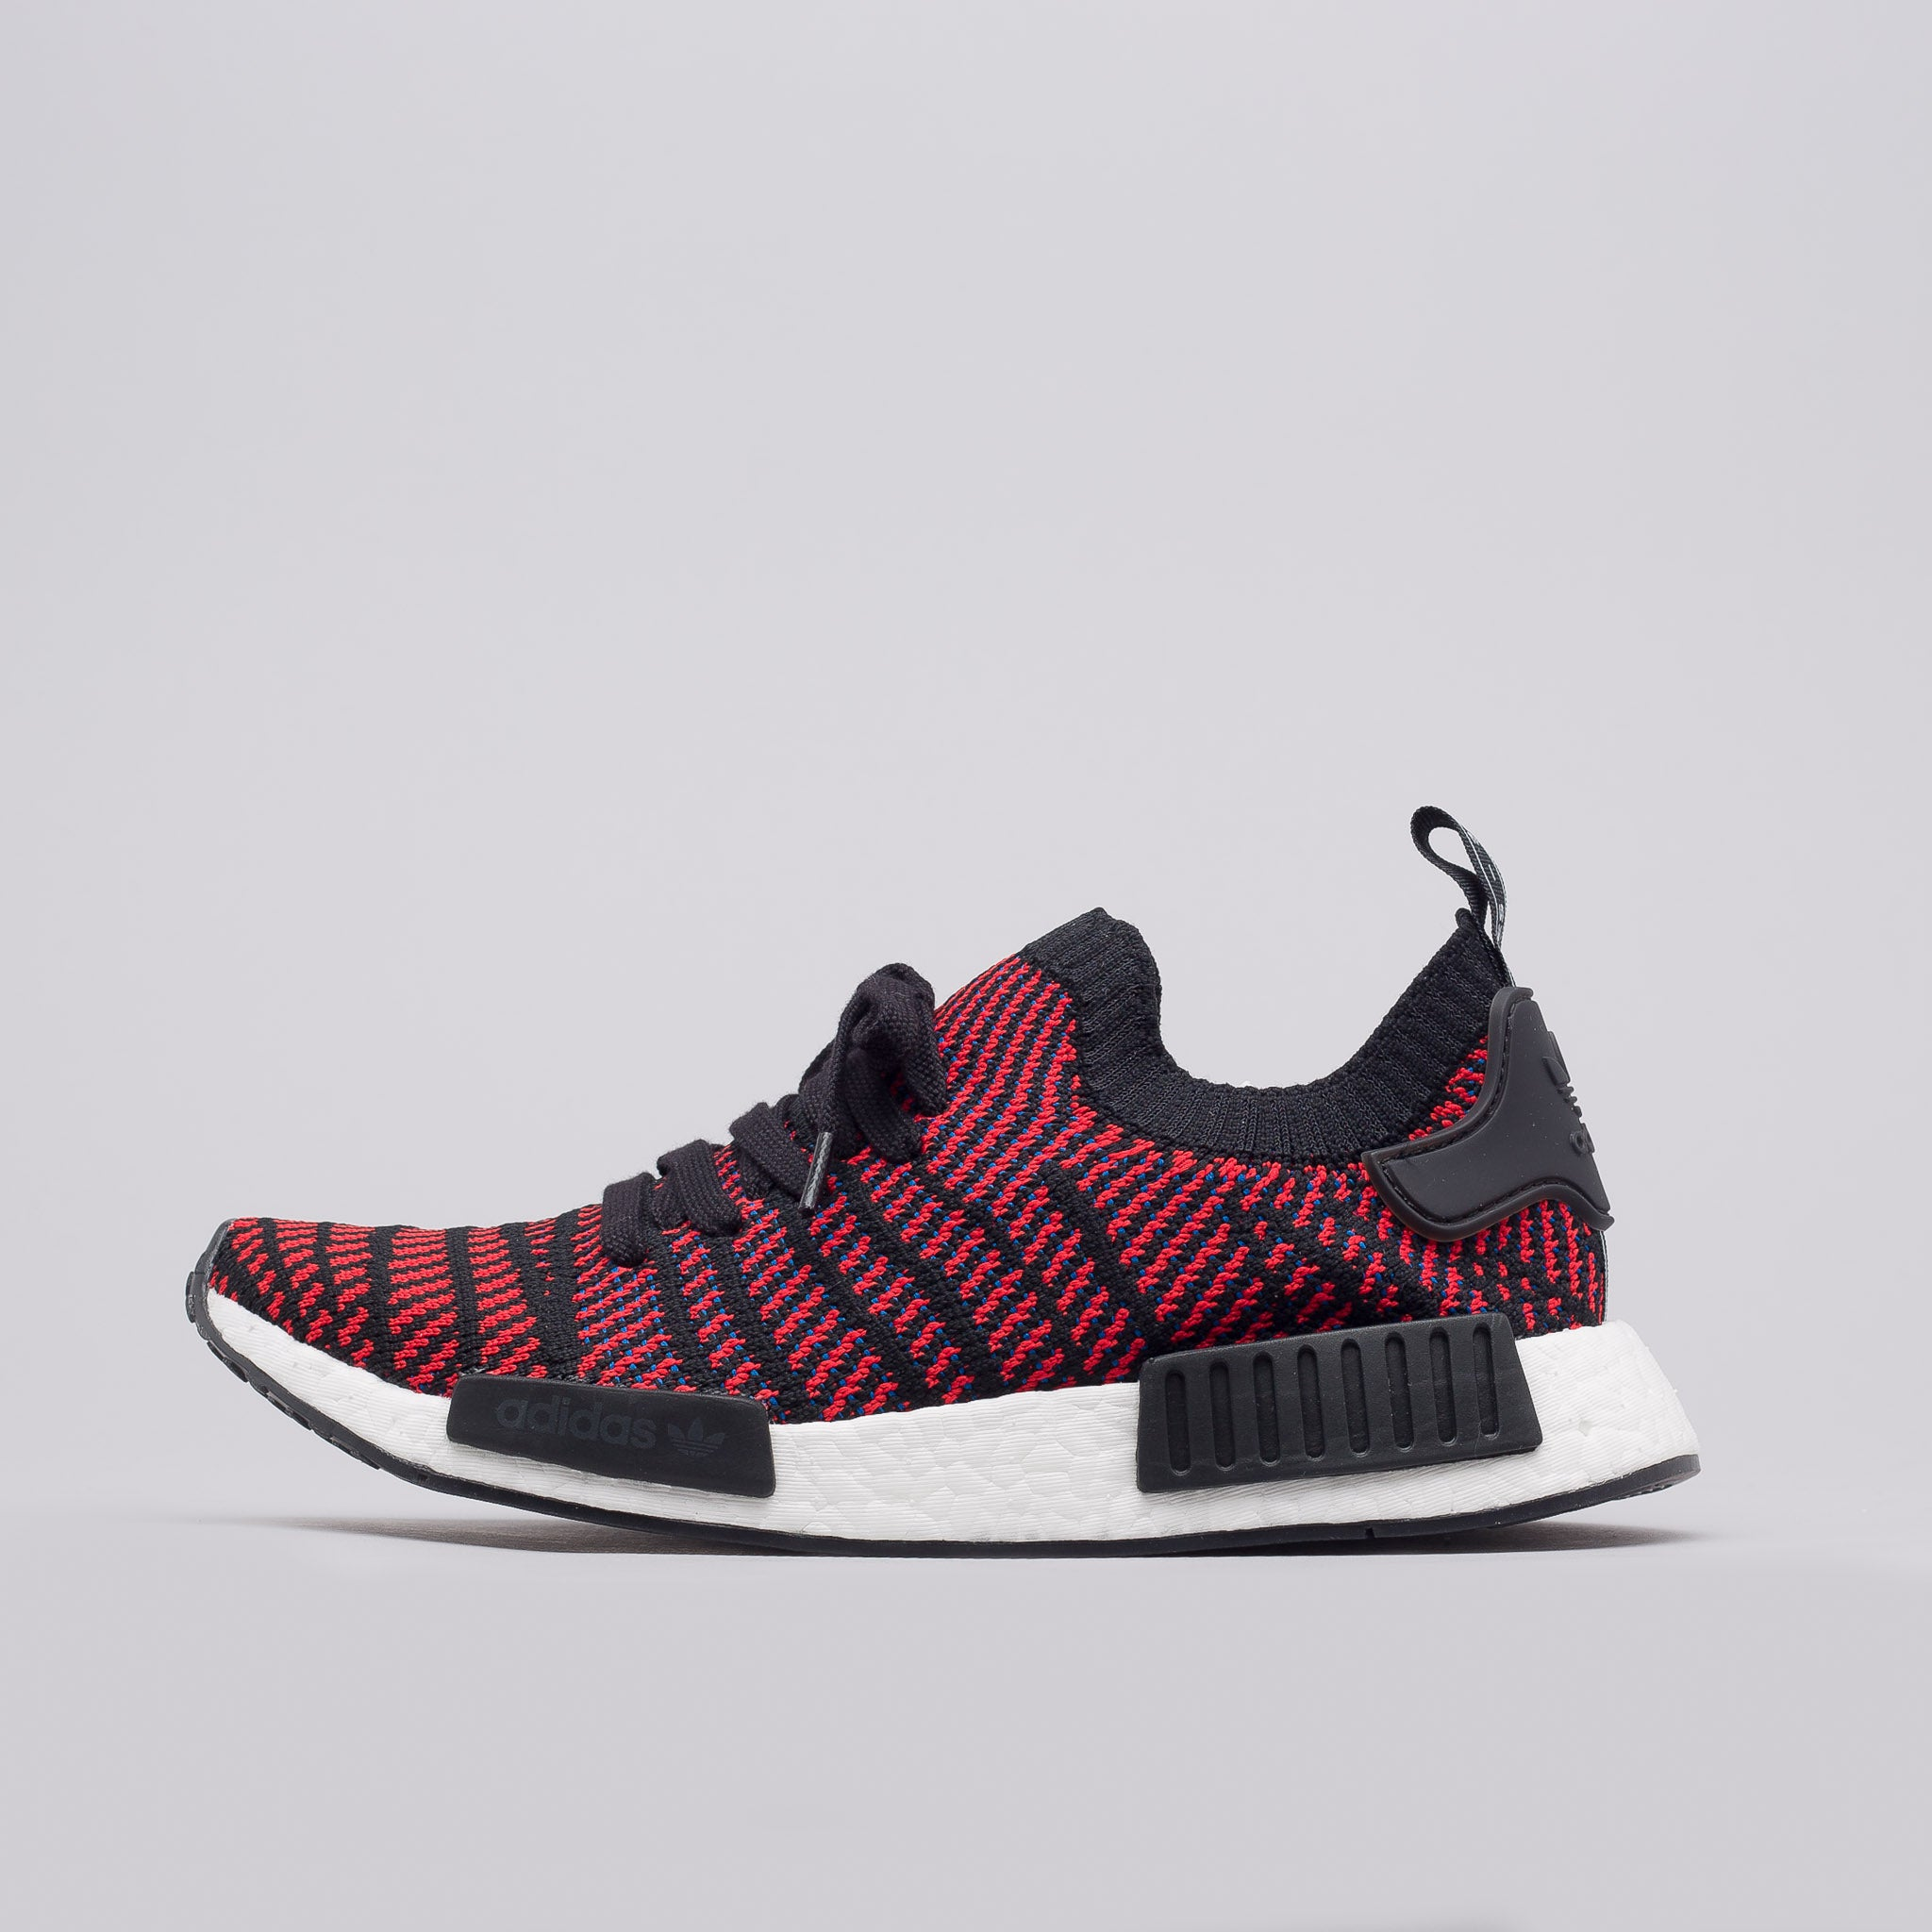 Adidas NMD R1 Runner Women Salmon 'Raw Pink' Review from